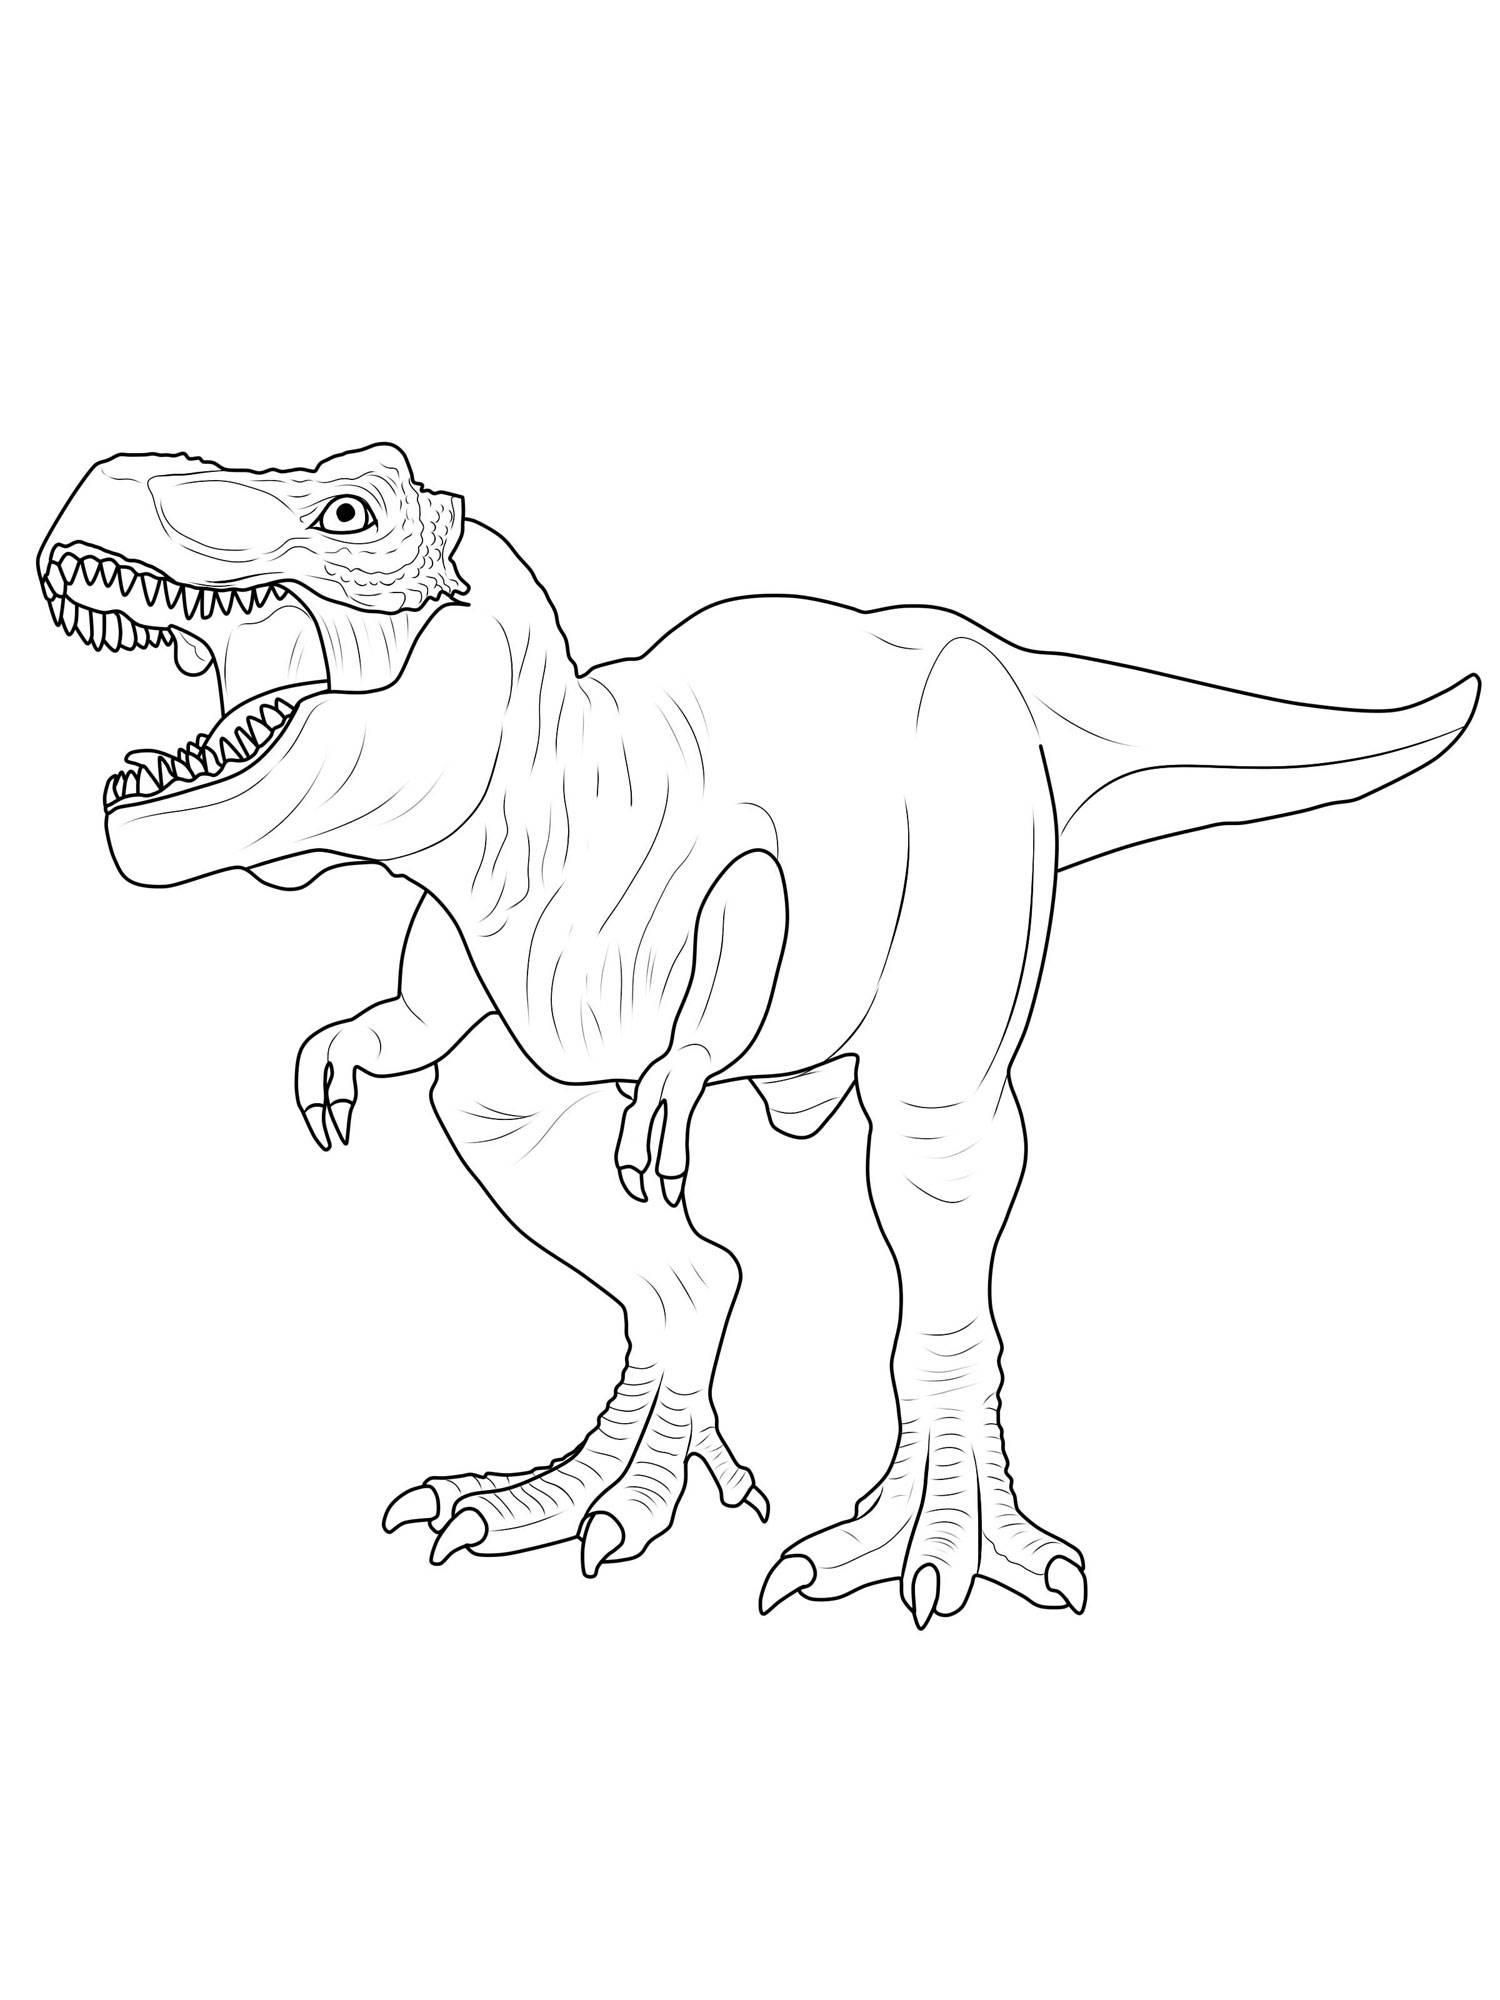 10 T Rex Coloring Page   Dinosaur coloring pages, Dinosaur ...